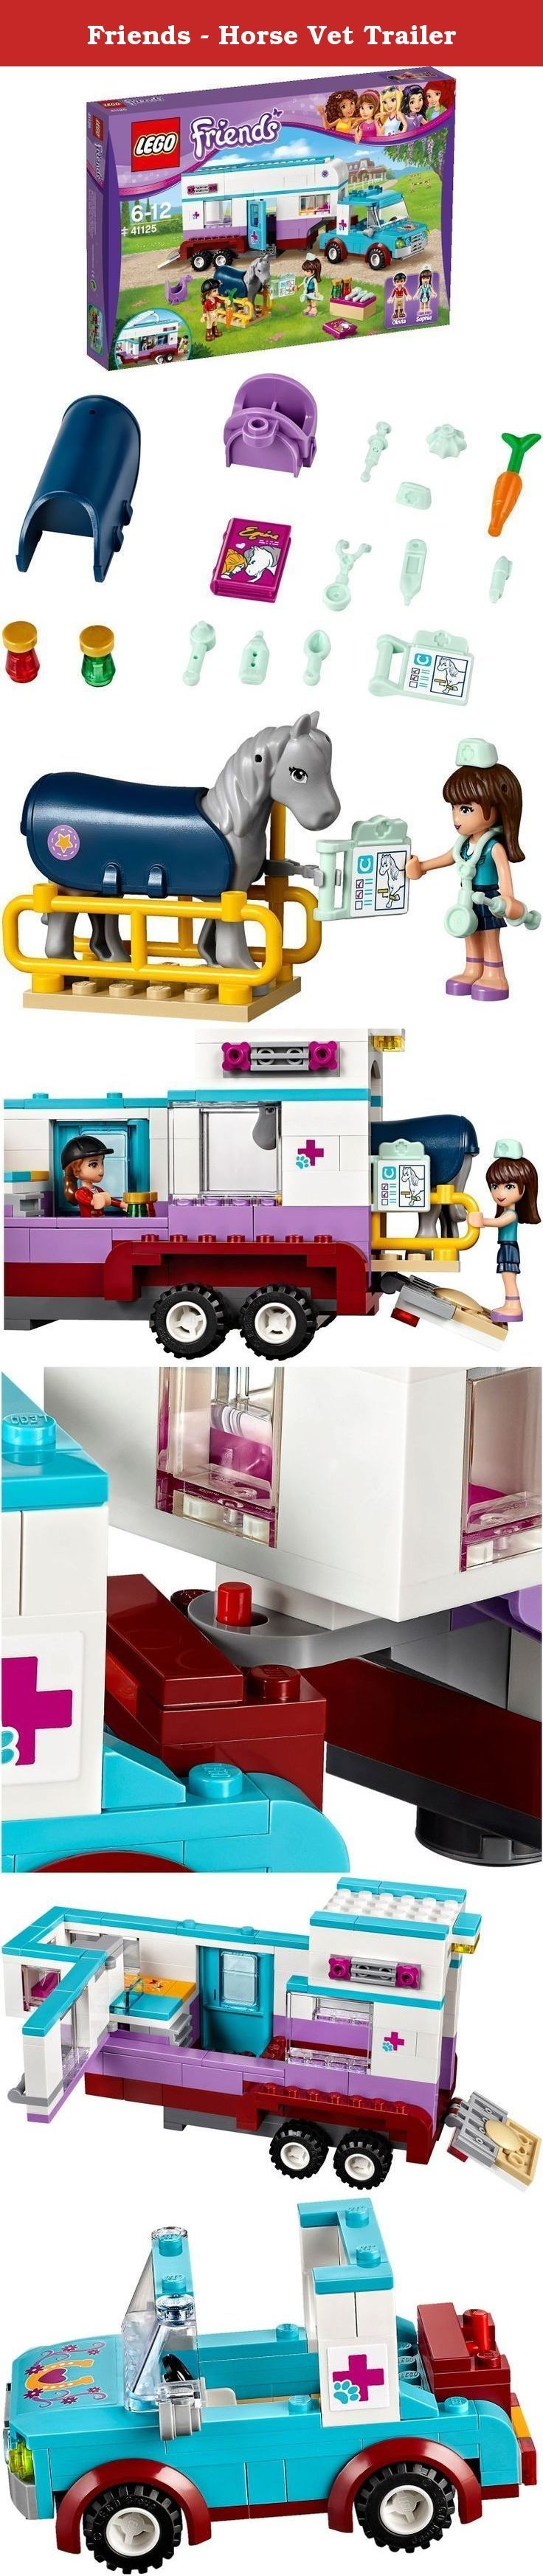 Friends - Horse Vet Trailer. LEGO 41125 Friends Horse Vet Trailer Construction Set.